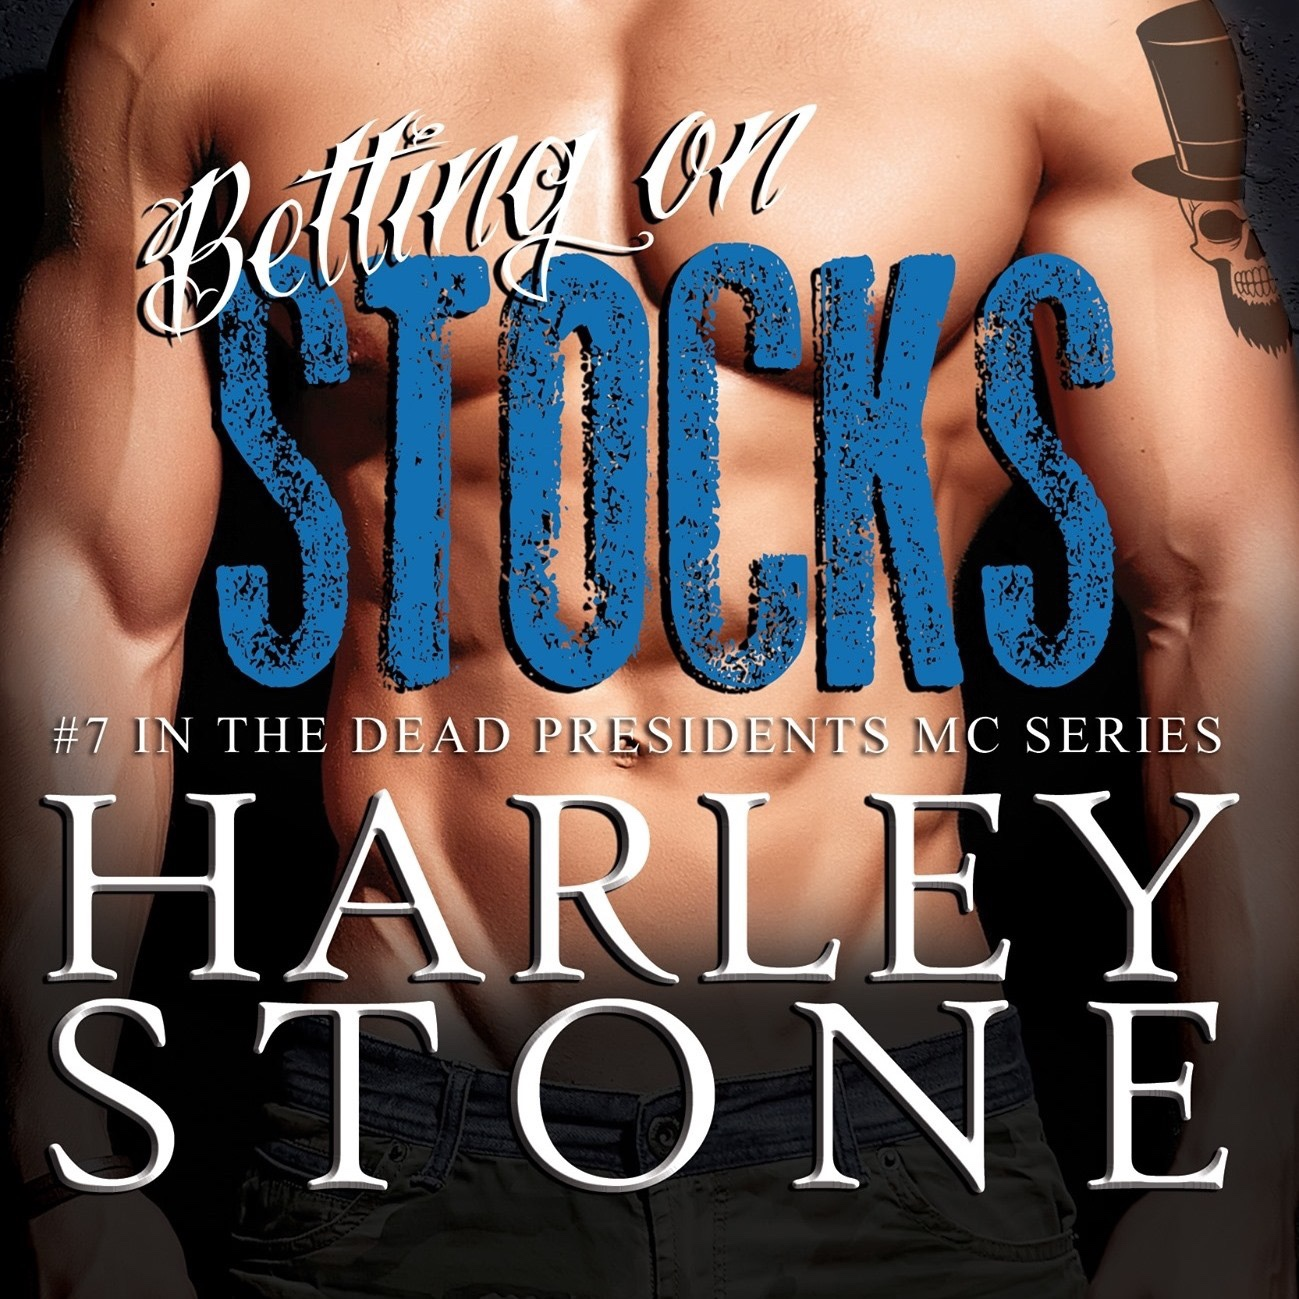 BETTING ON STOCKS by Harley Stone